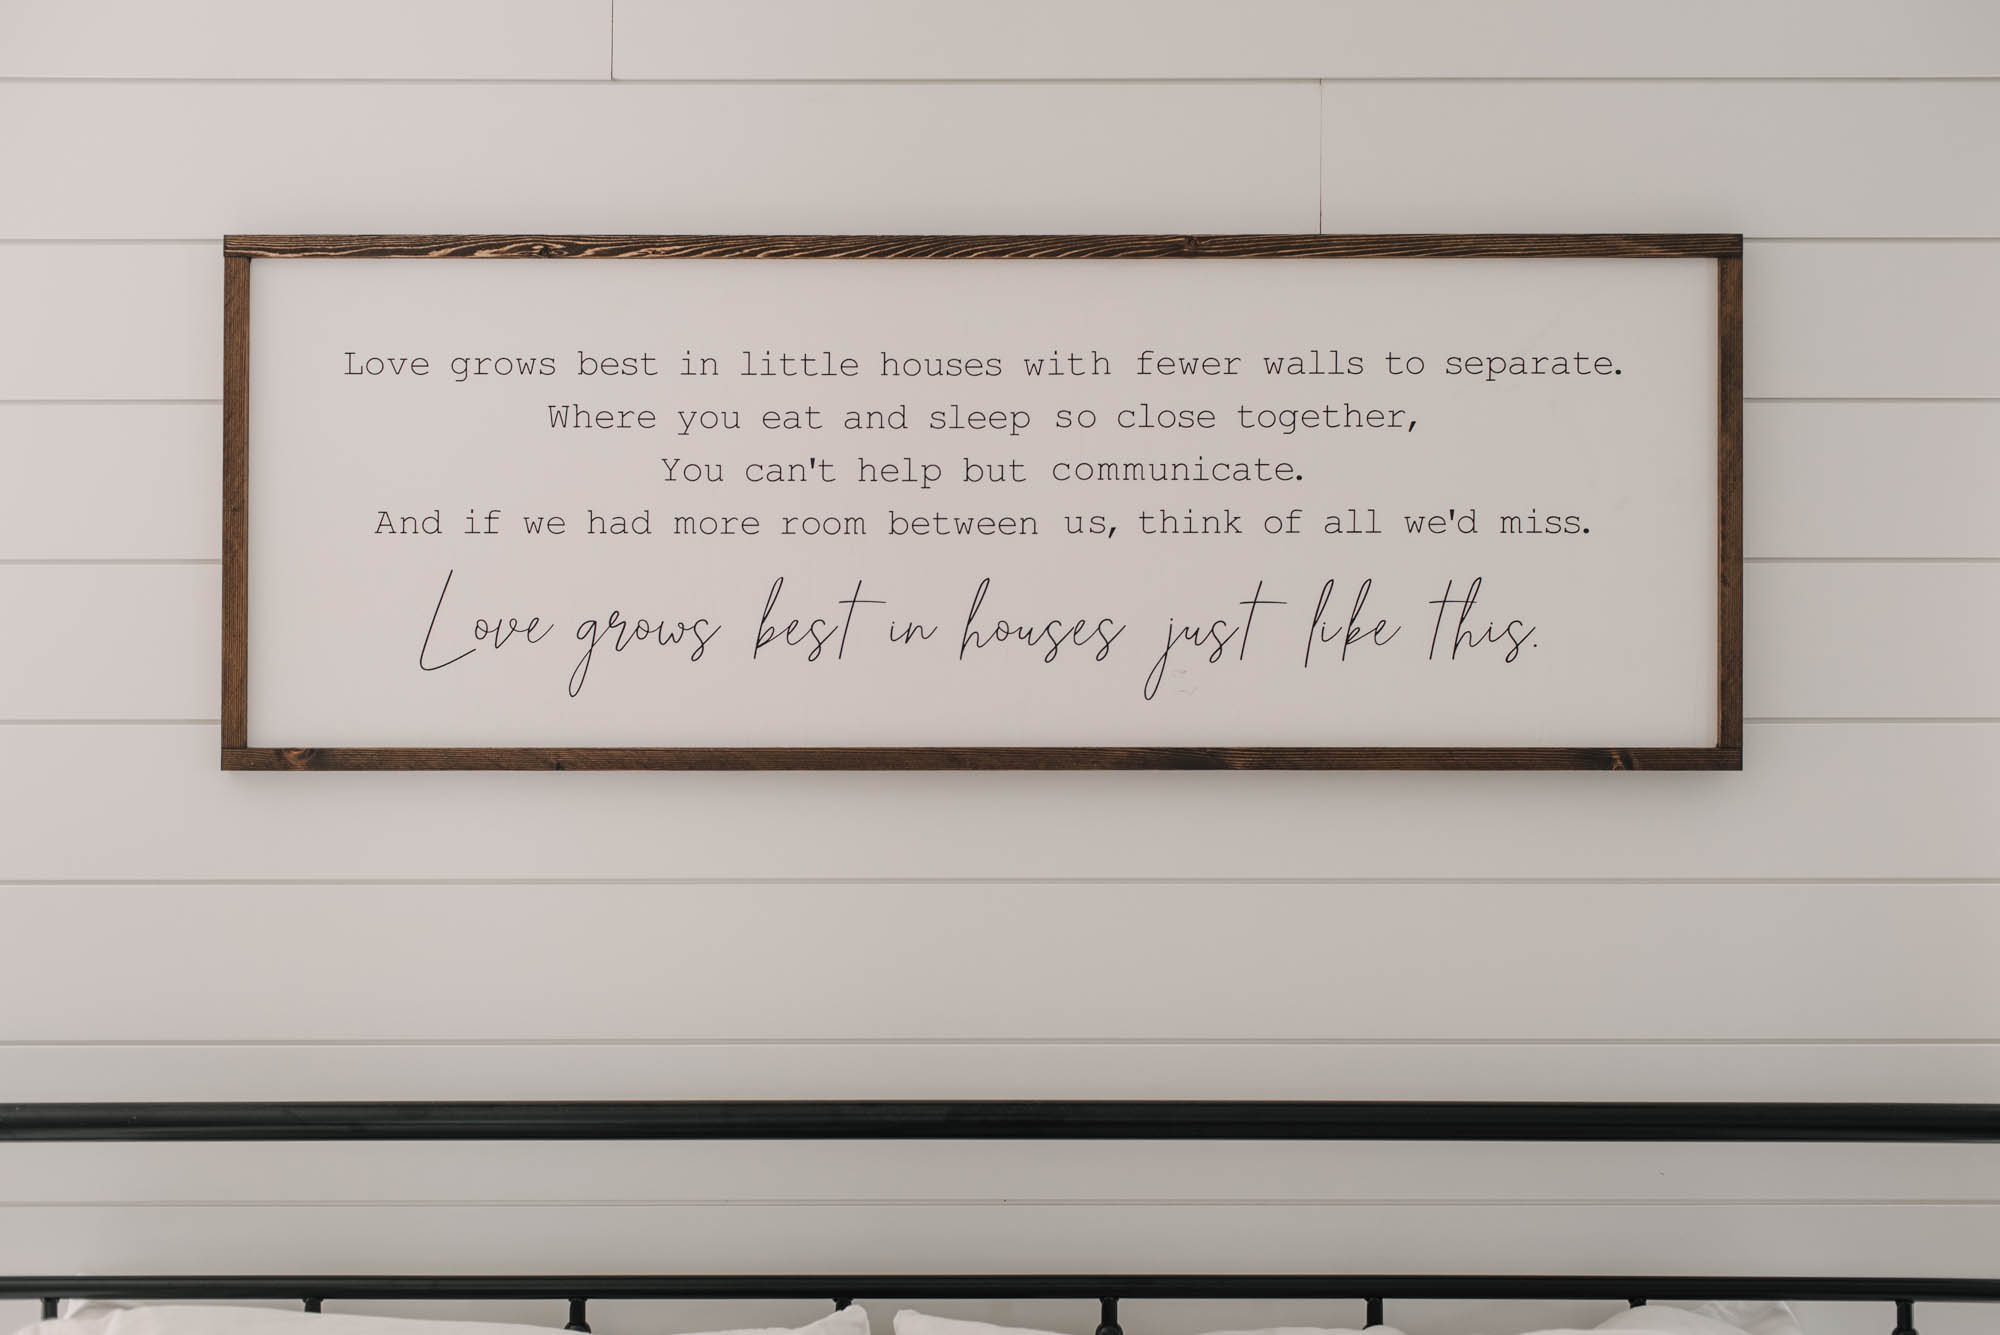 Farmhouse bedroom decor with wooden sign: love grows best in little houses